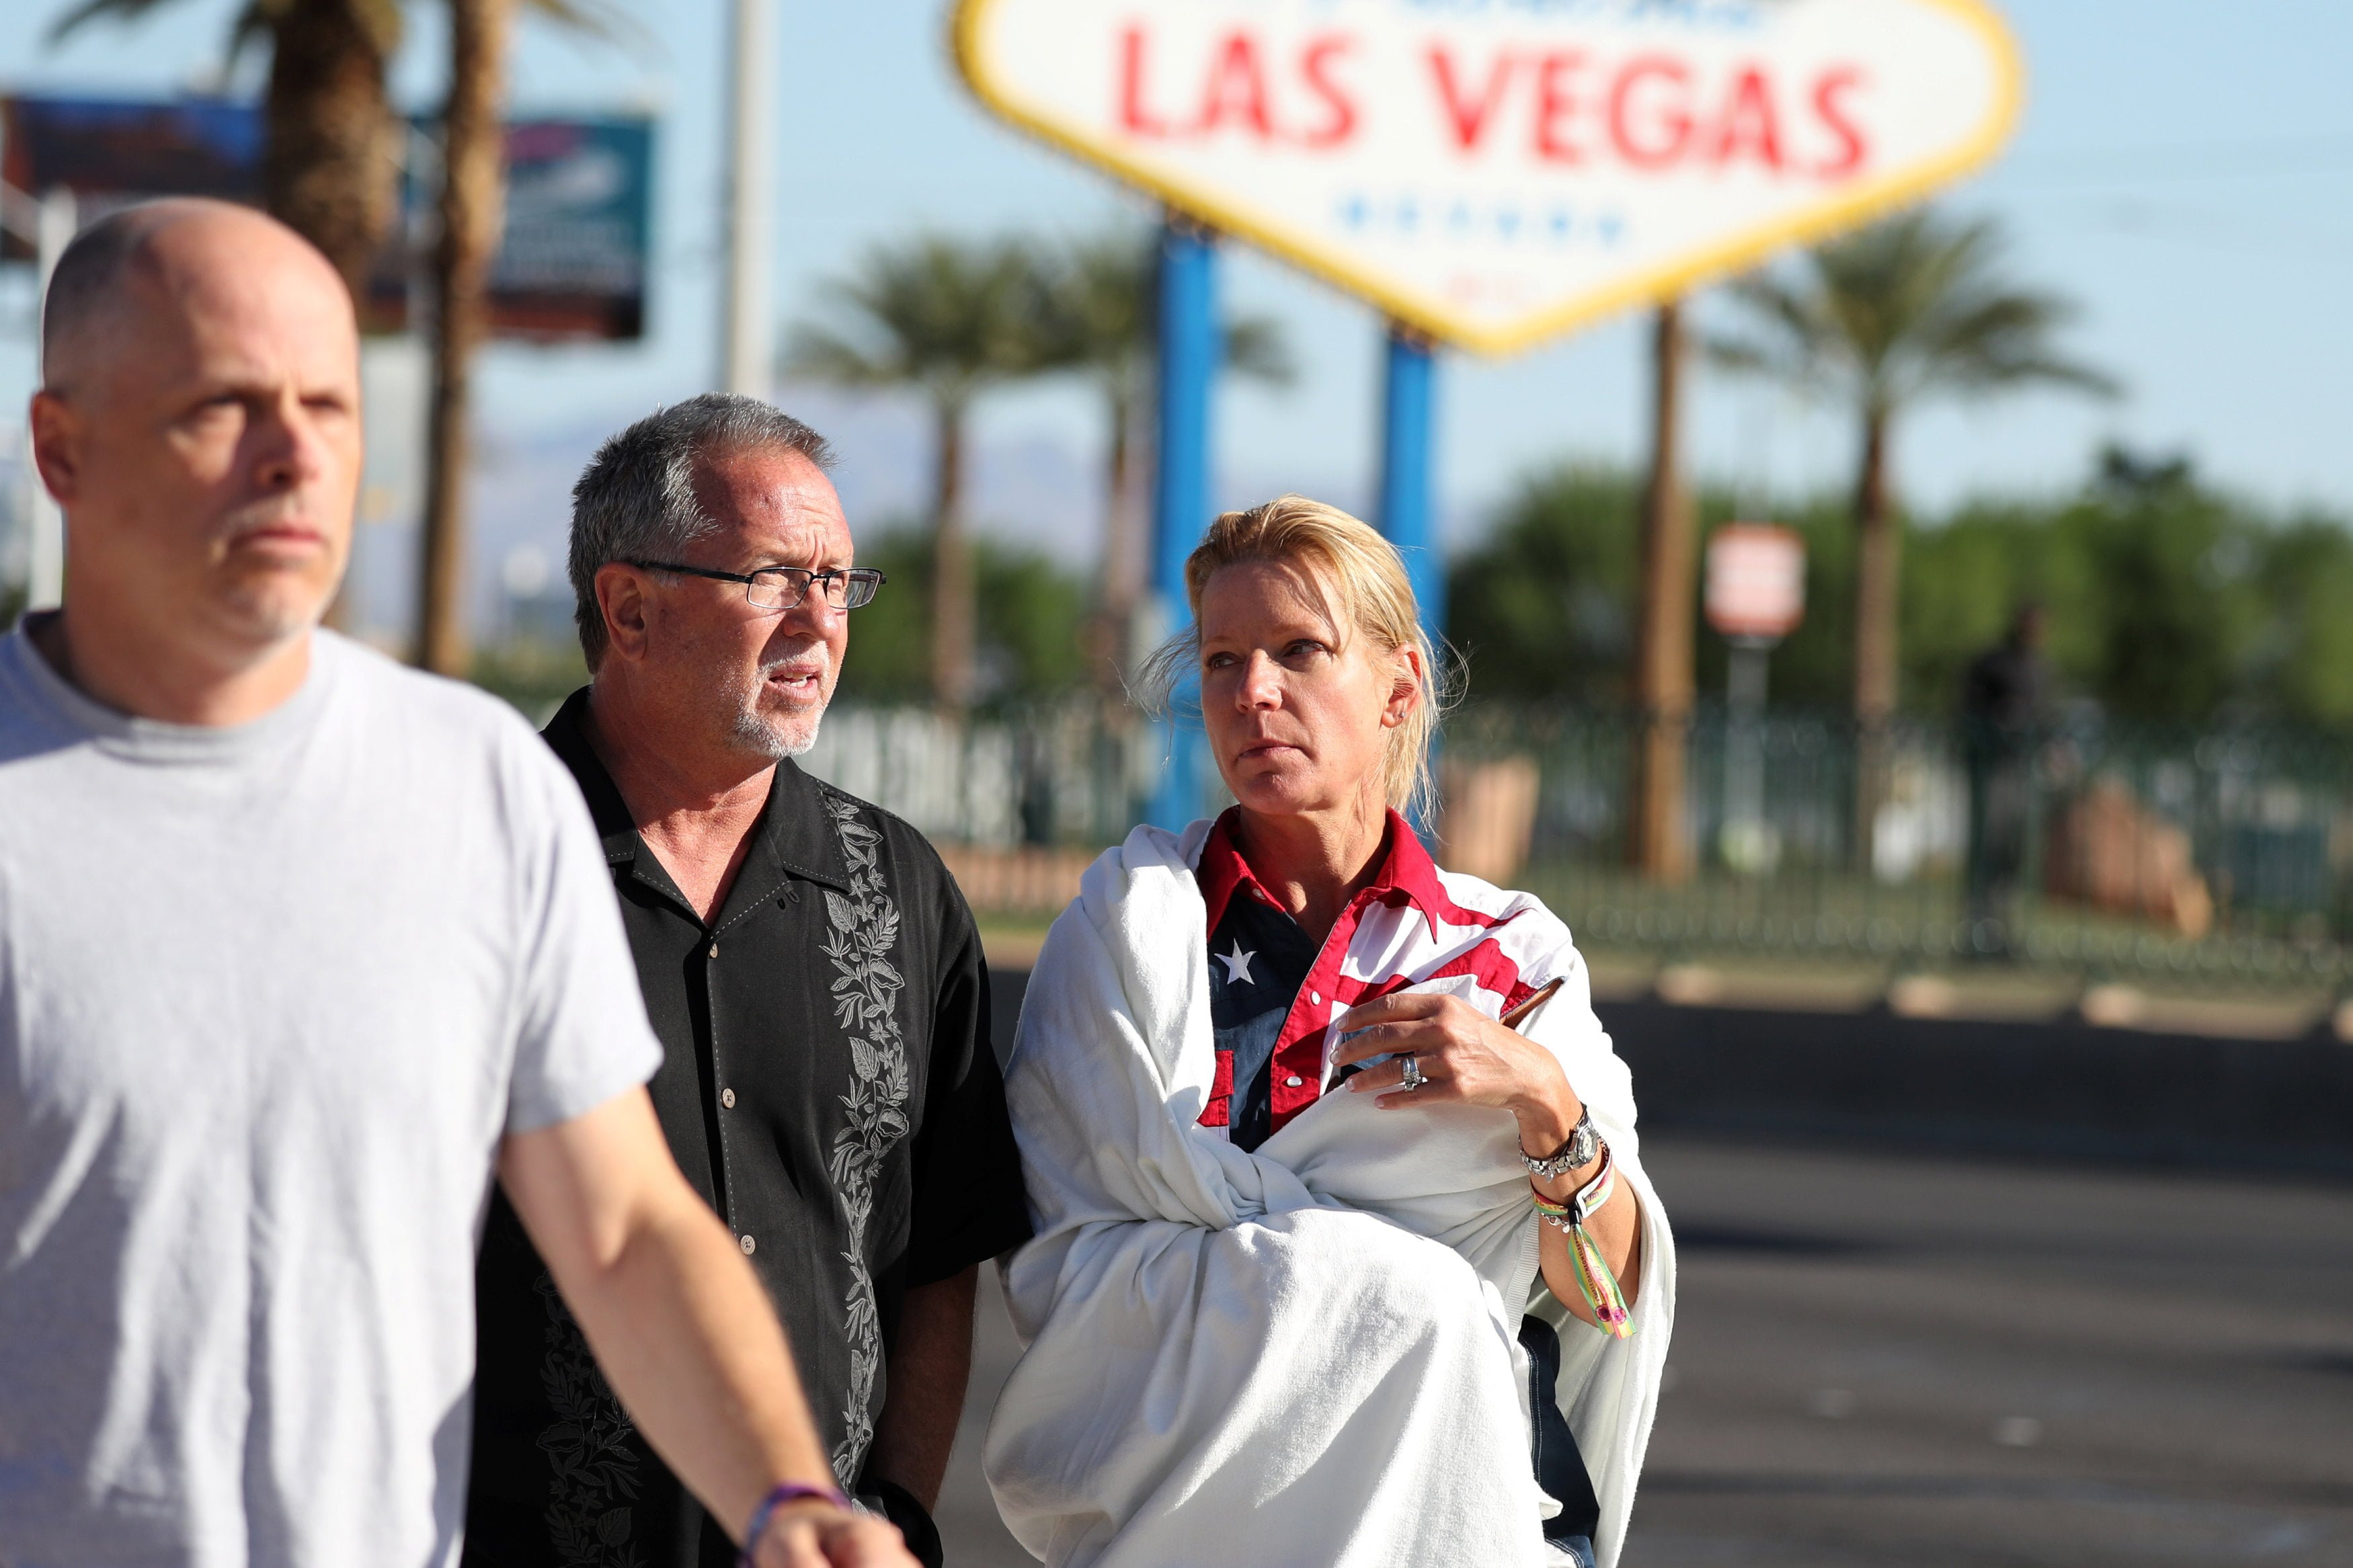 A woman wearing a Route 91 wristband walks near the Mandalay Bay Resort and Casino following a mass shooting at the Route 91 Festival in Las Vegas